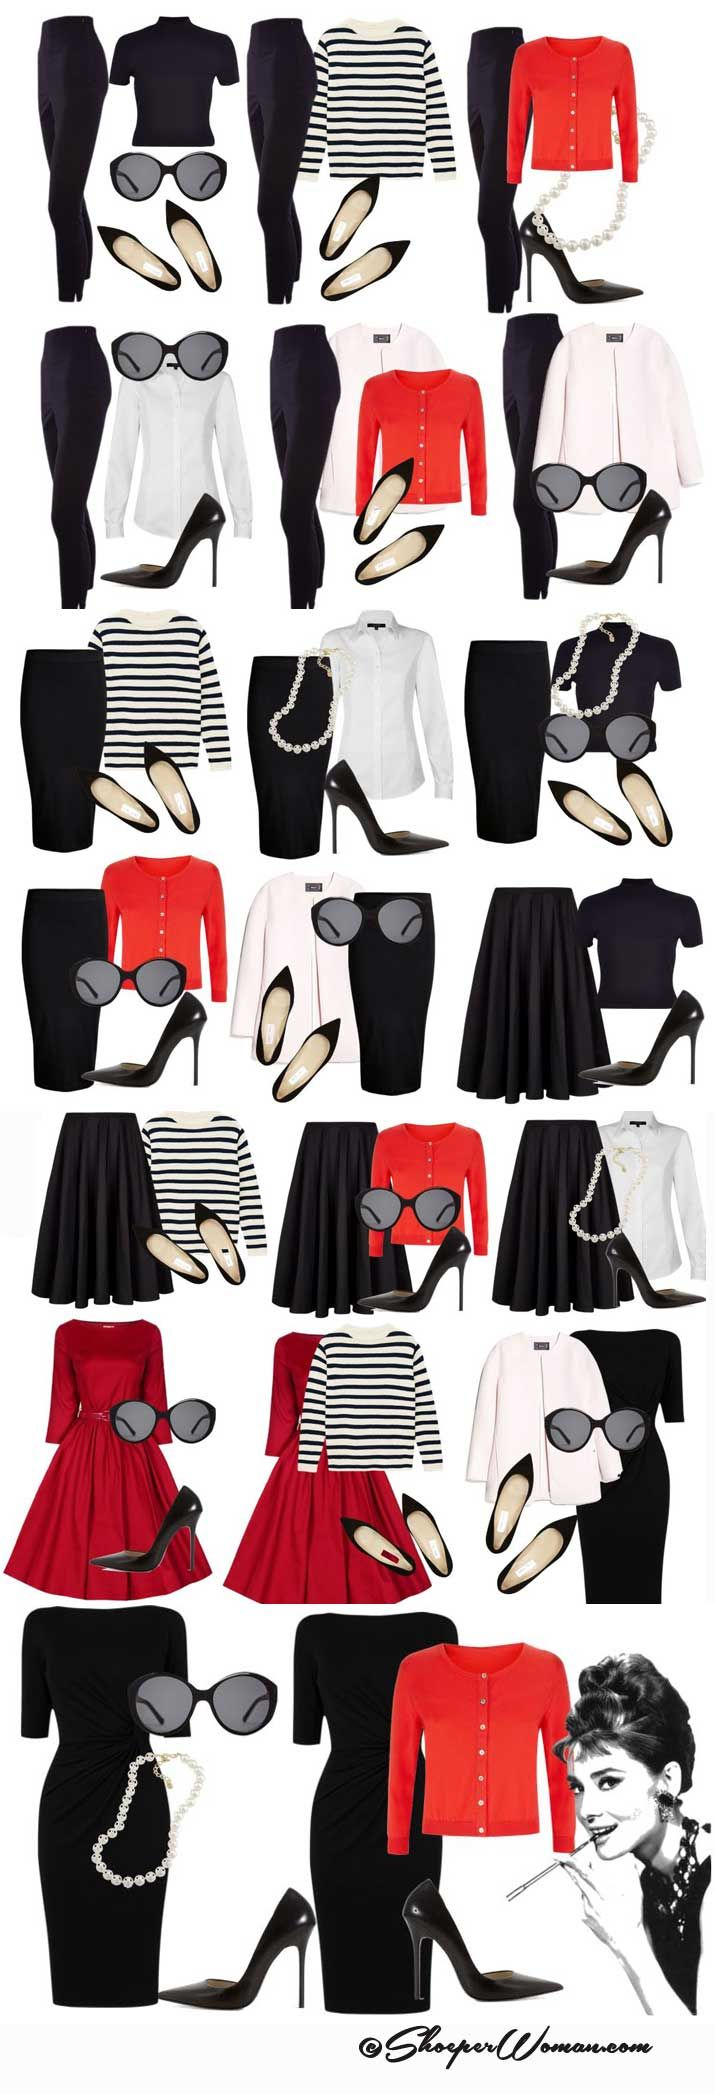 Audrey Hepburn style outfits from small capsule wardrobe. @laurencm